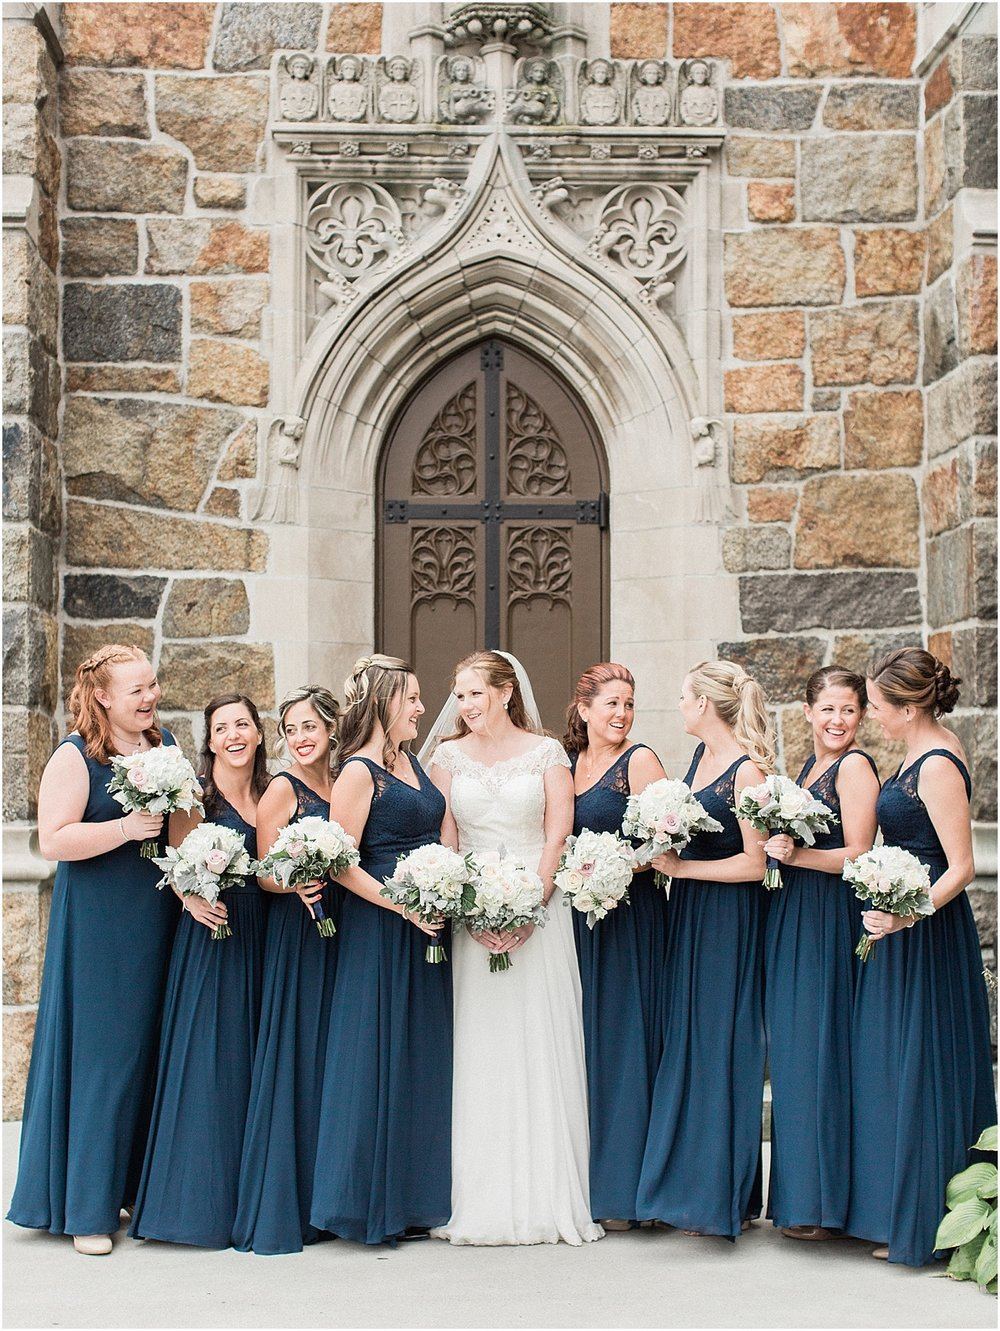 jaclyn_adam_st_ann_brendans_dorchester_southie_castle_bride_groom_venezia_waterfront__cape_cod_boston_wedding_photographer_meredith_jane_photography_photo_0902.jpg